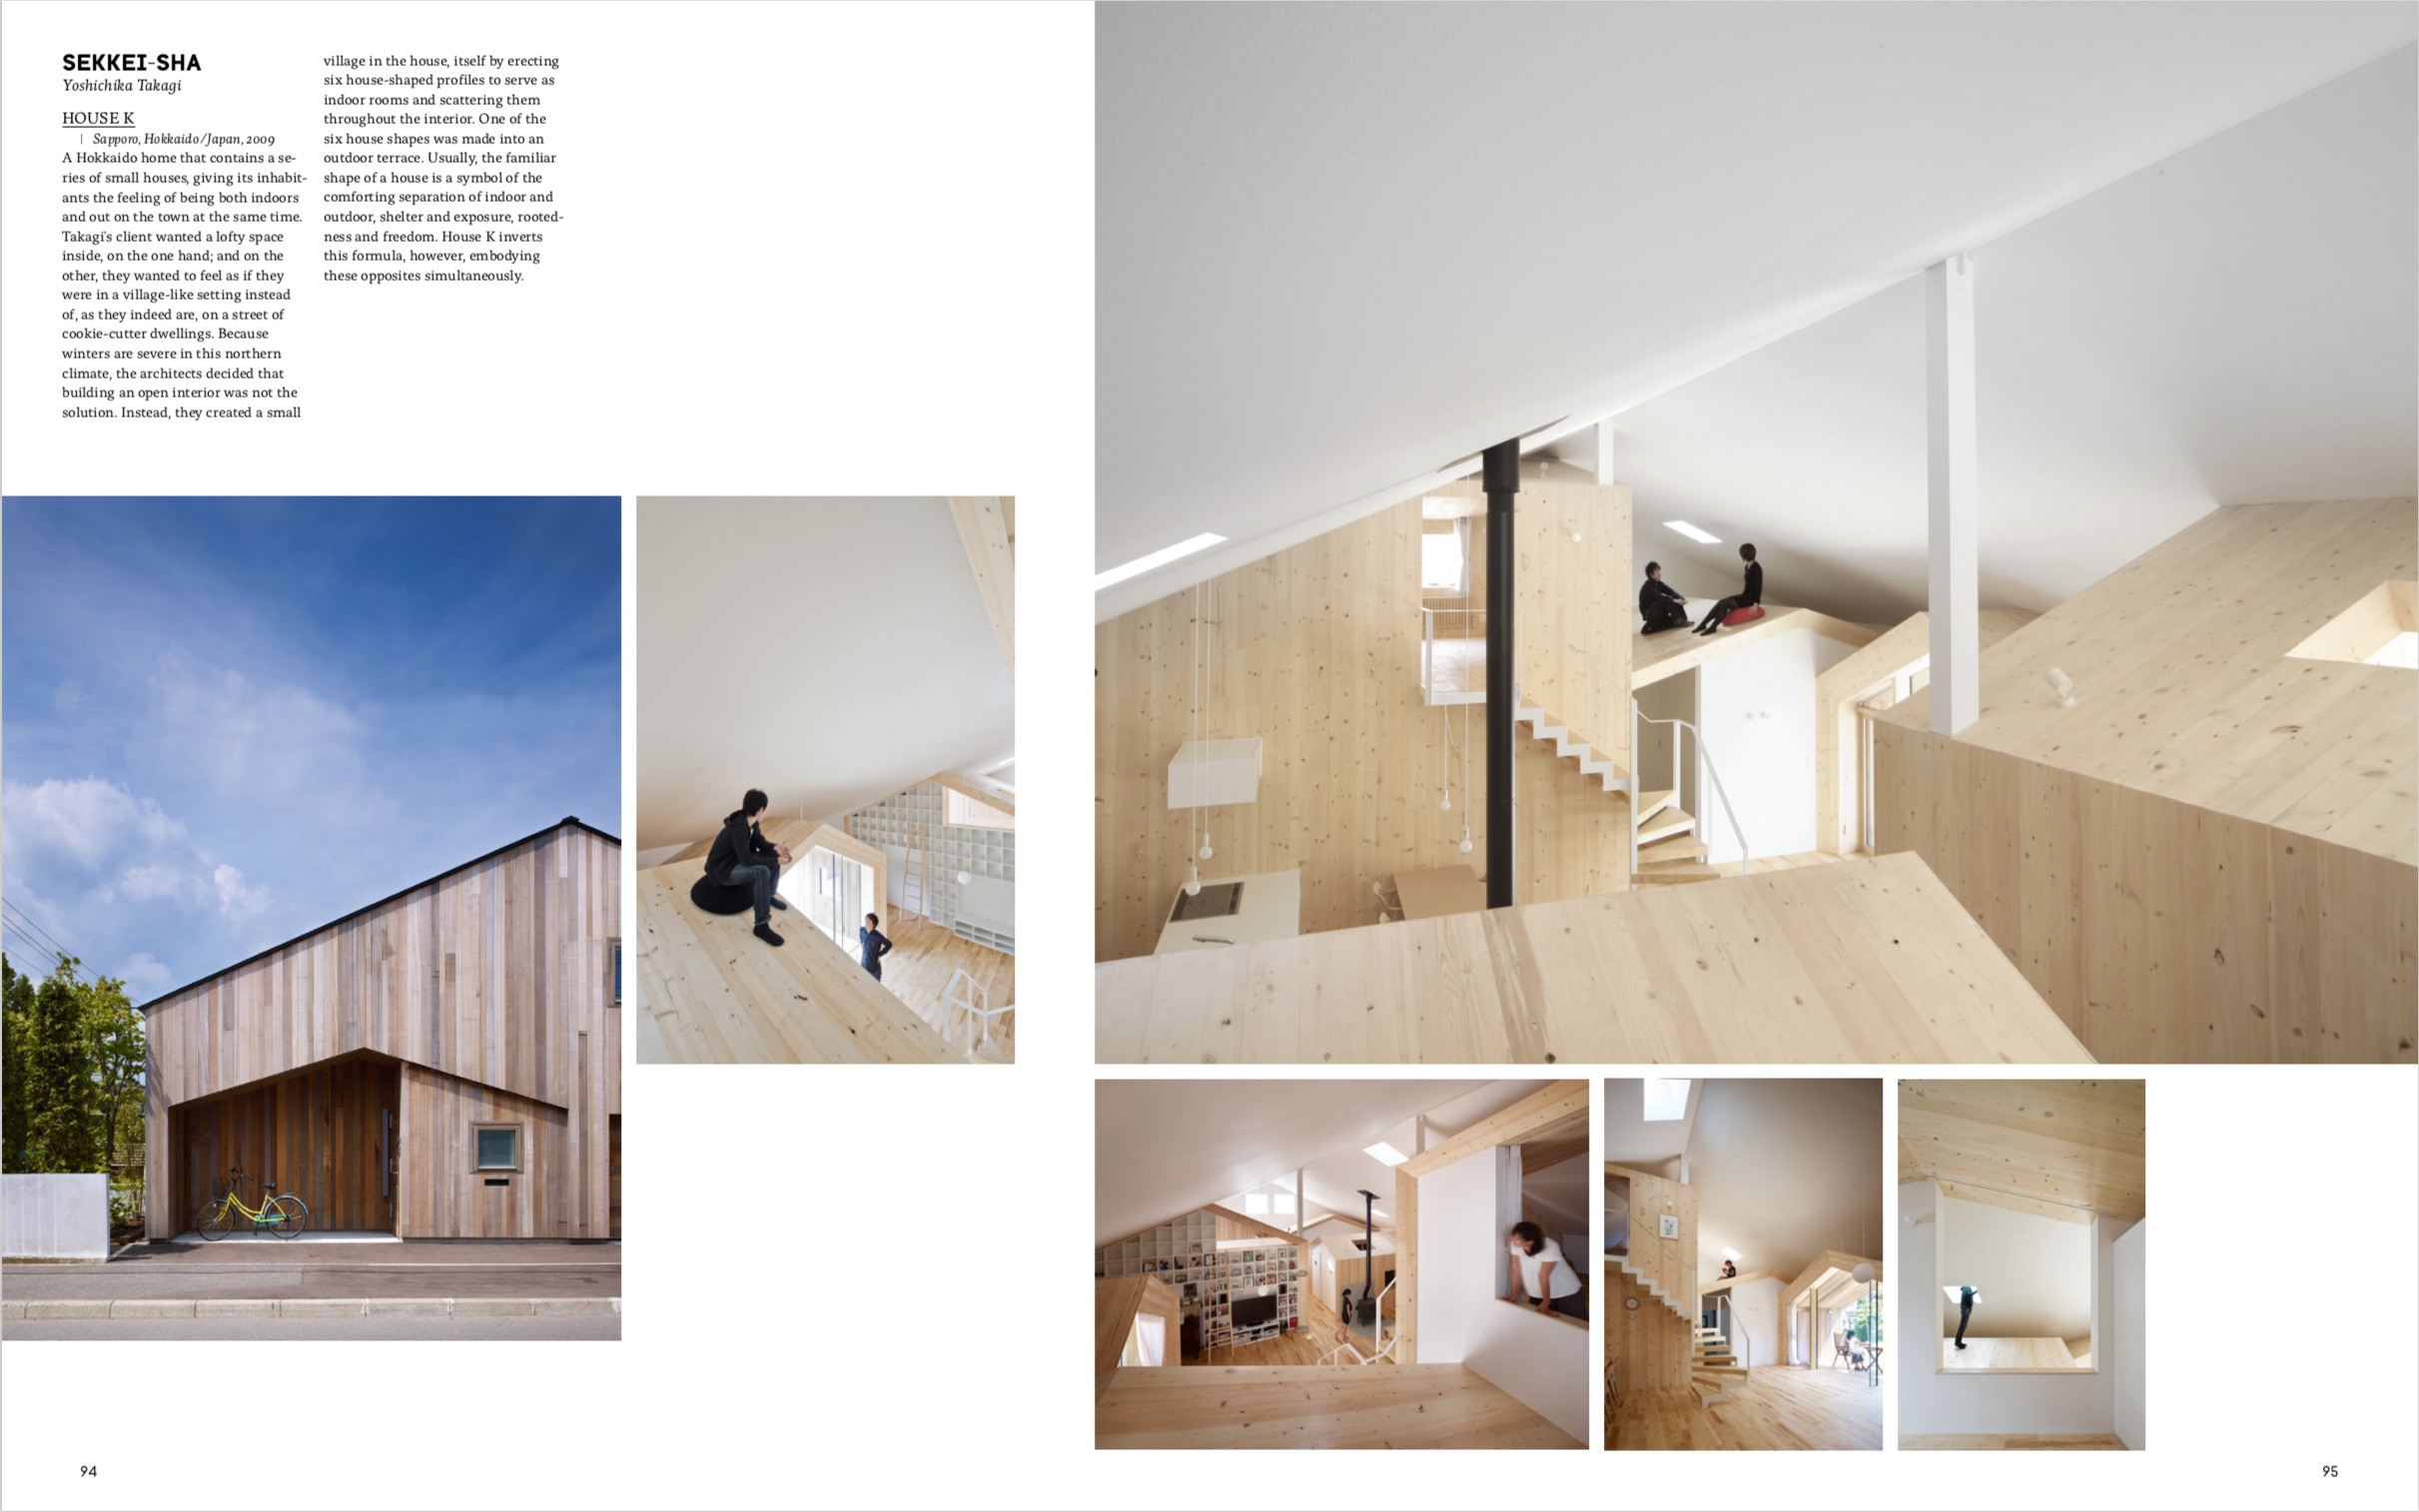 By Robert Klanten, K.Bolhofer, B.Meyer from Sublime: New Design and Architecture from Japan copyright Gestalten 2011